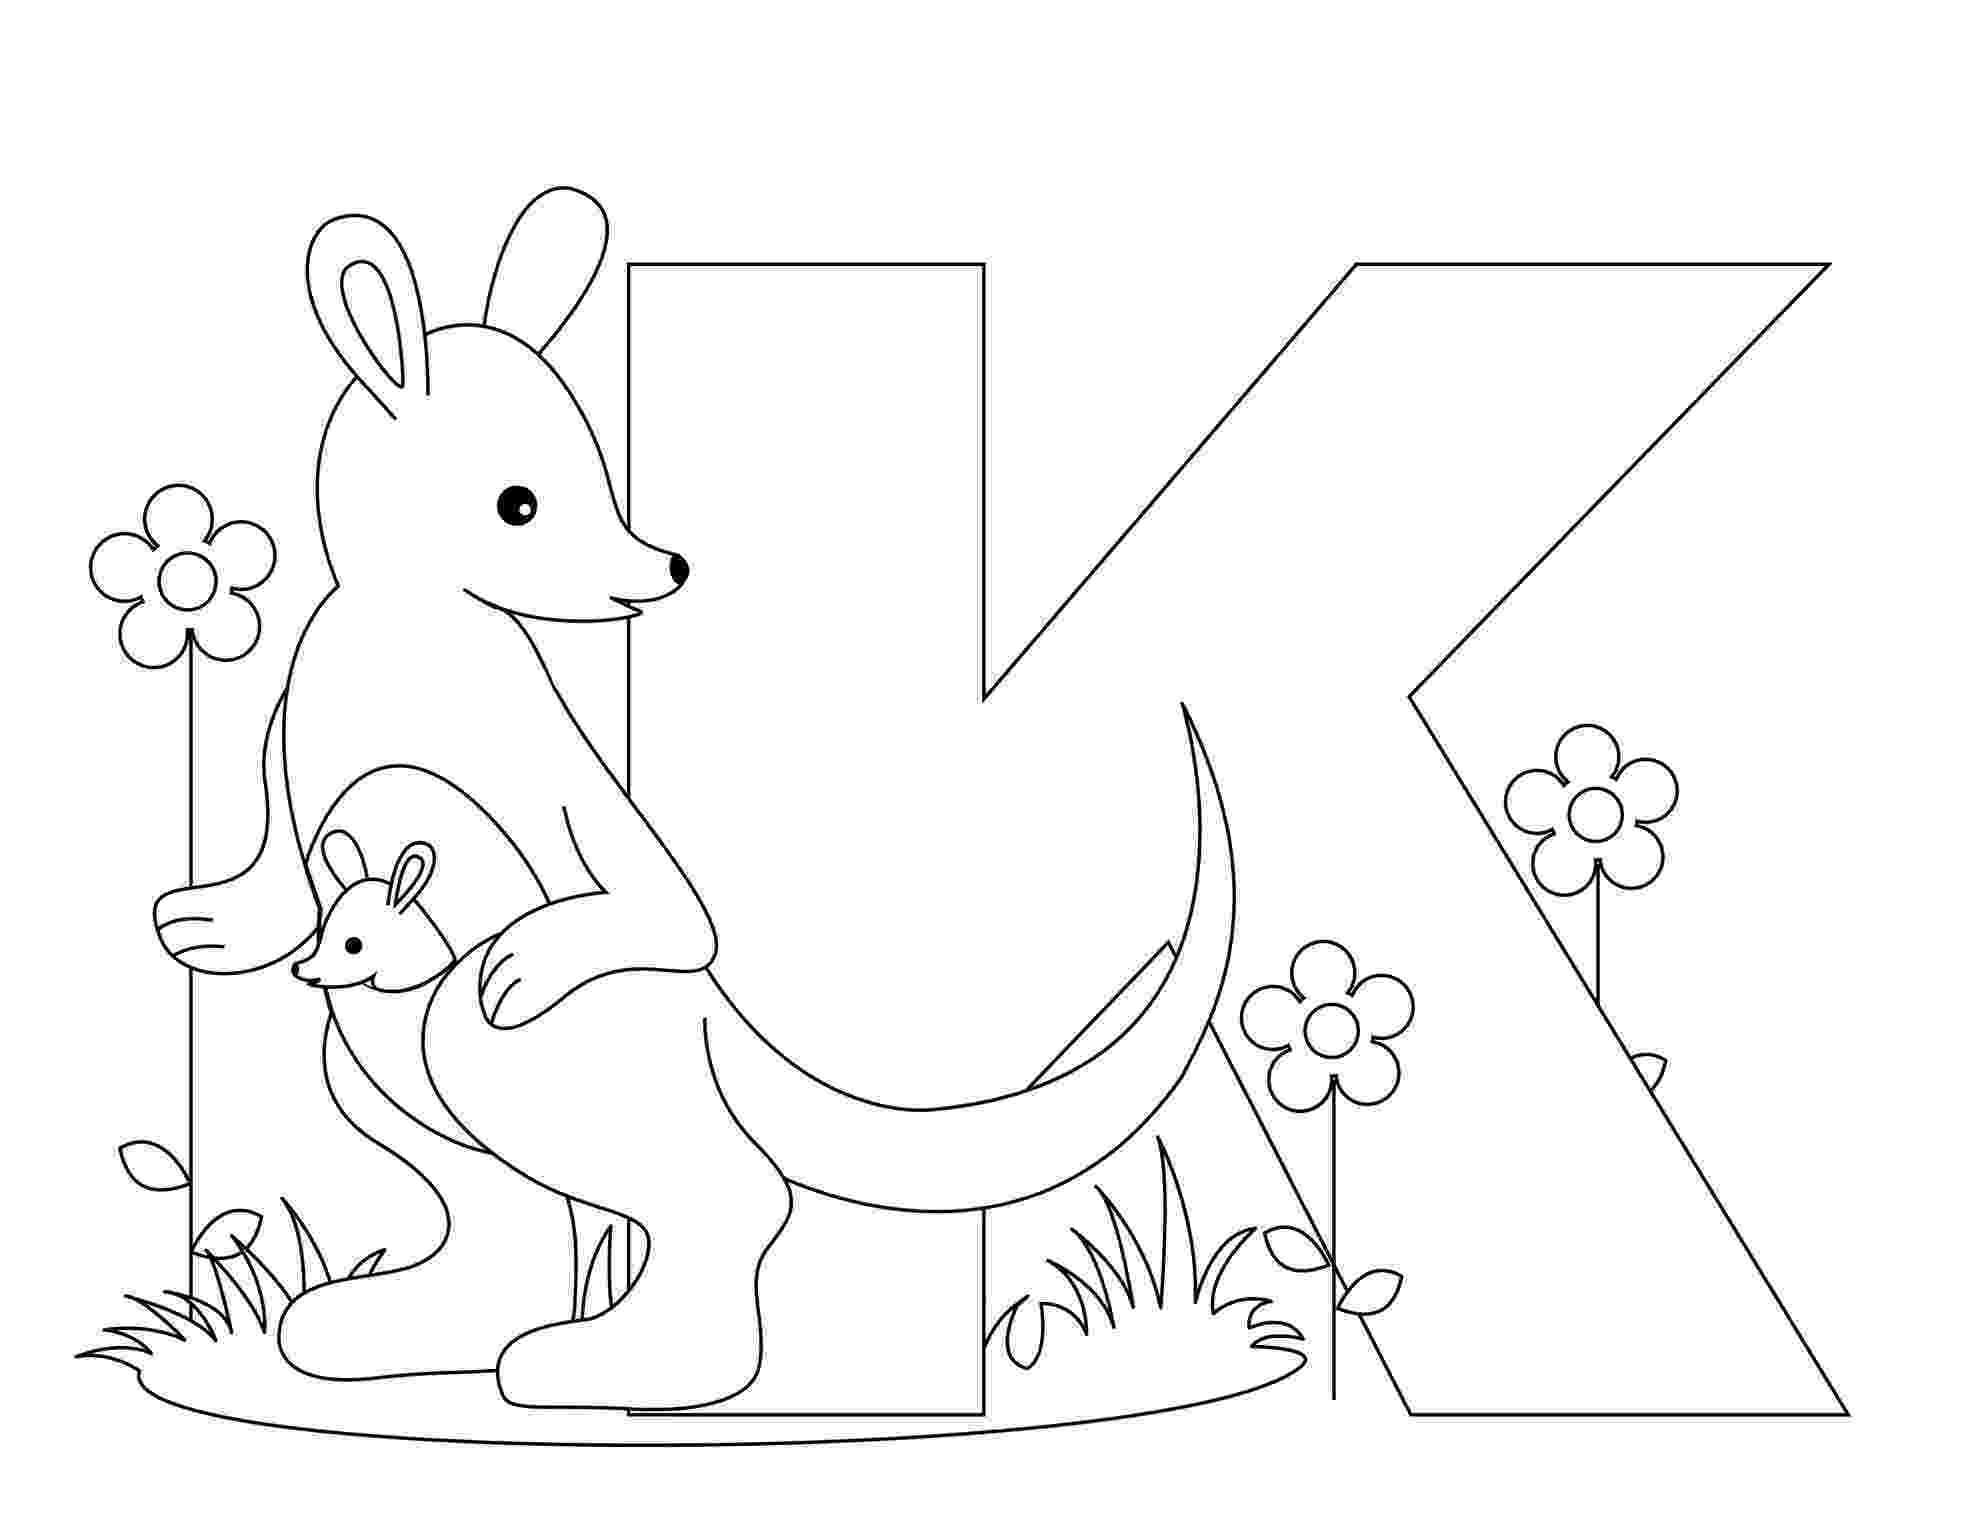 coloring pictures of alphabet letters free printable alphabet coloring pages for kids best of alphabet coloring letters pictures